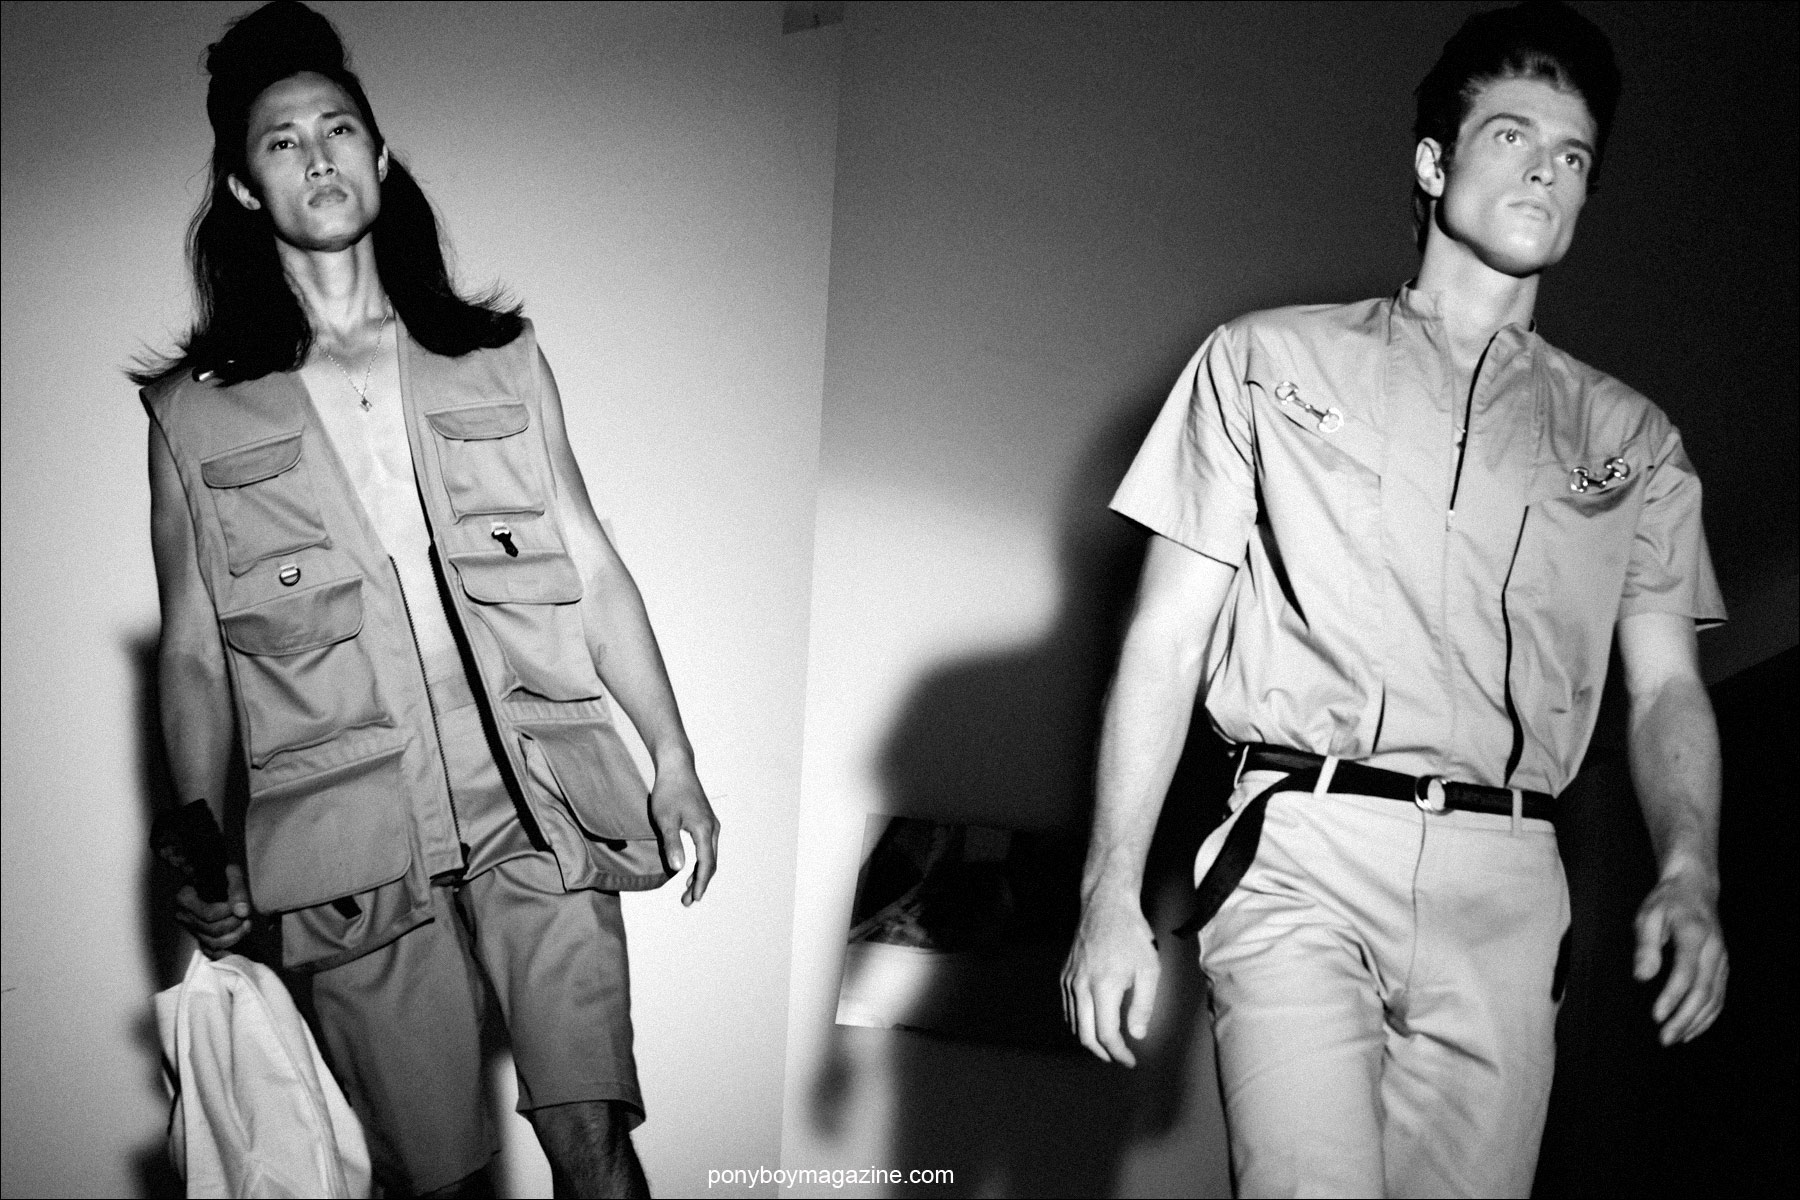 Male models in safari style clothing for Martin Keehn Spring/Summer 2015. Photographed by Alexander Thompson for Ponyboy Magazine.